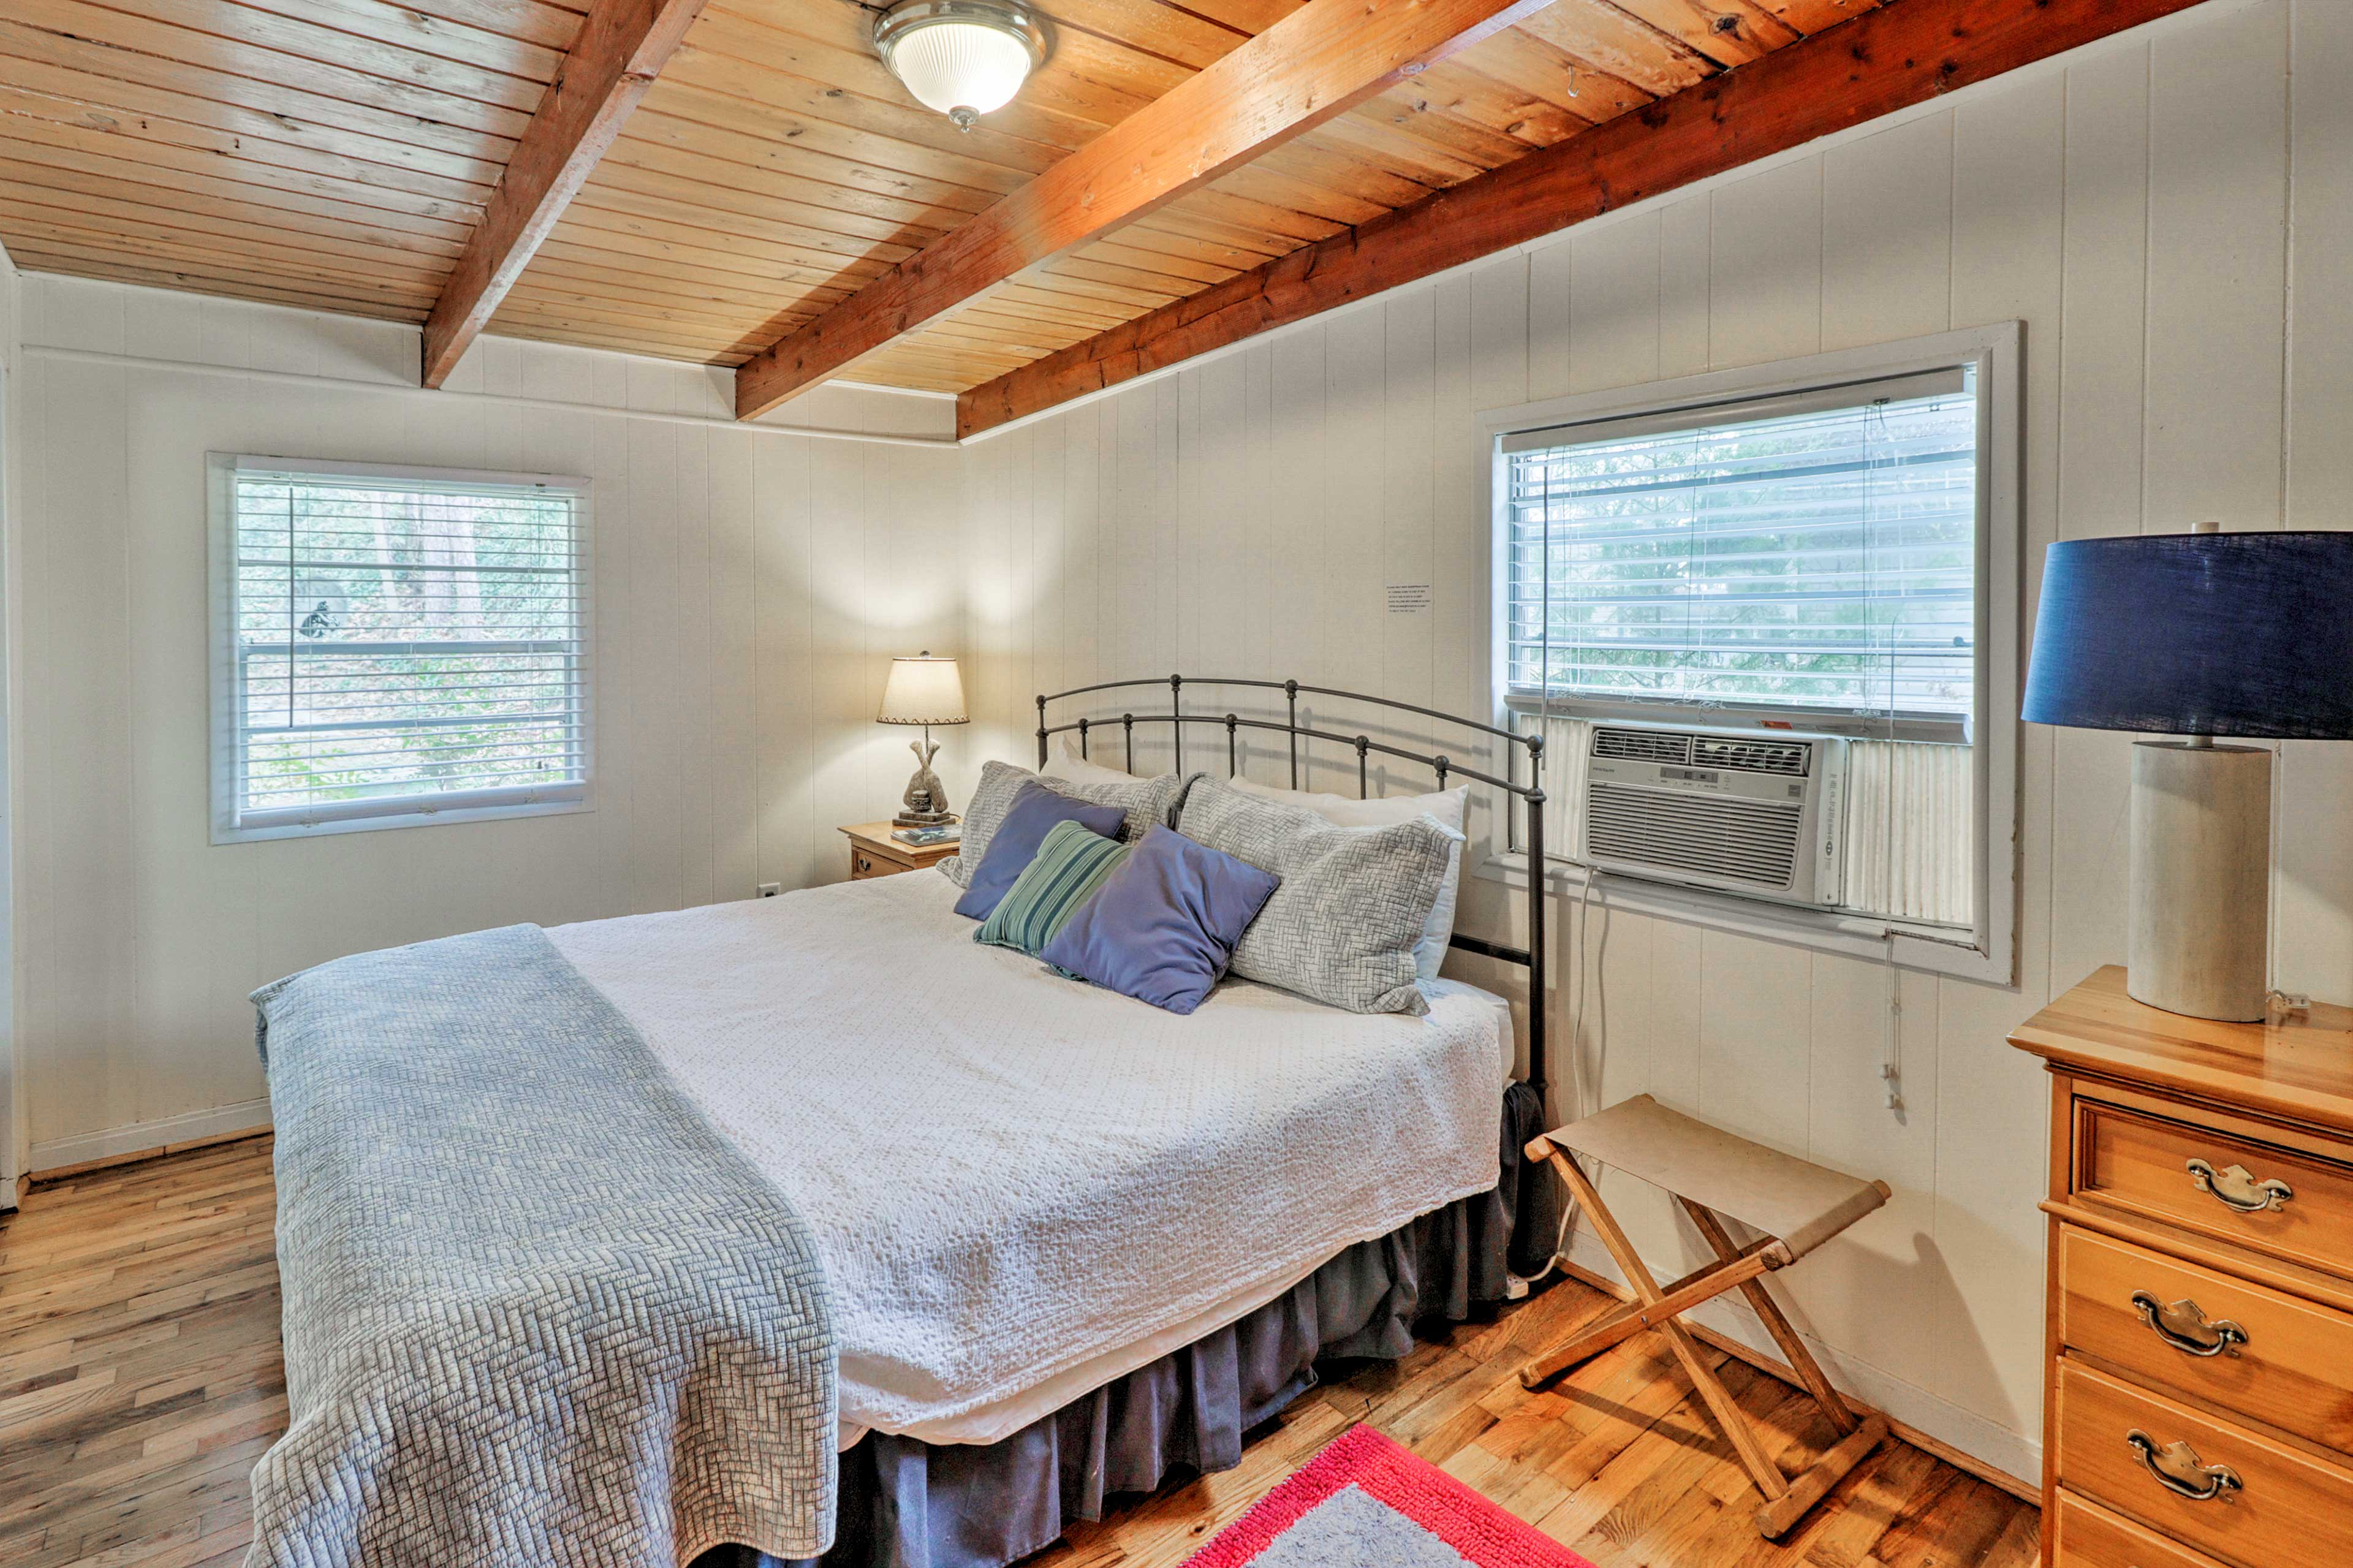 Cool off in the California king-sized bed with a window A/C unit.